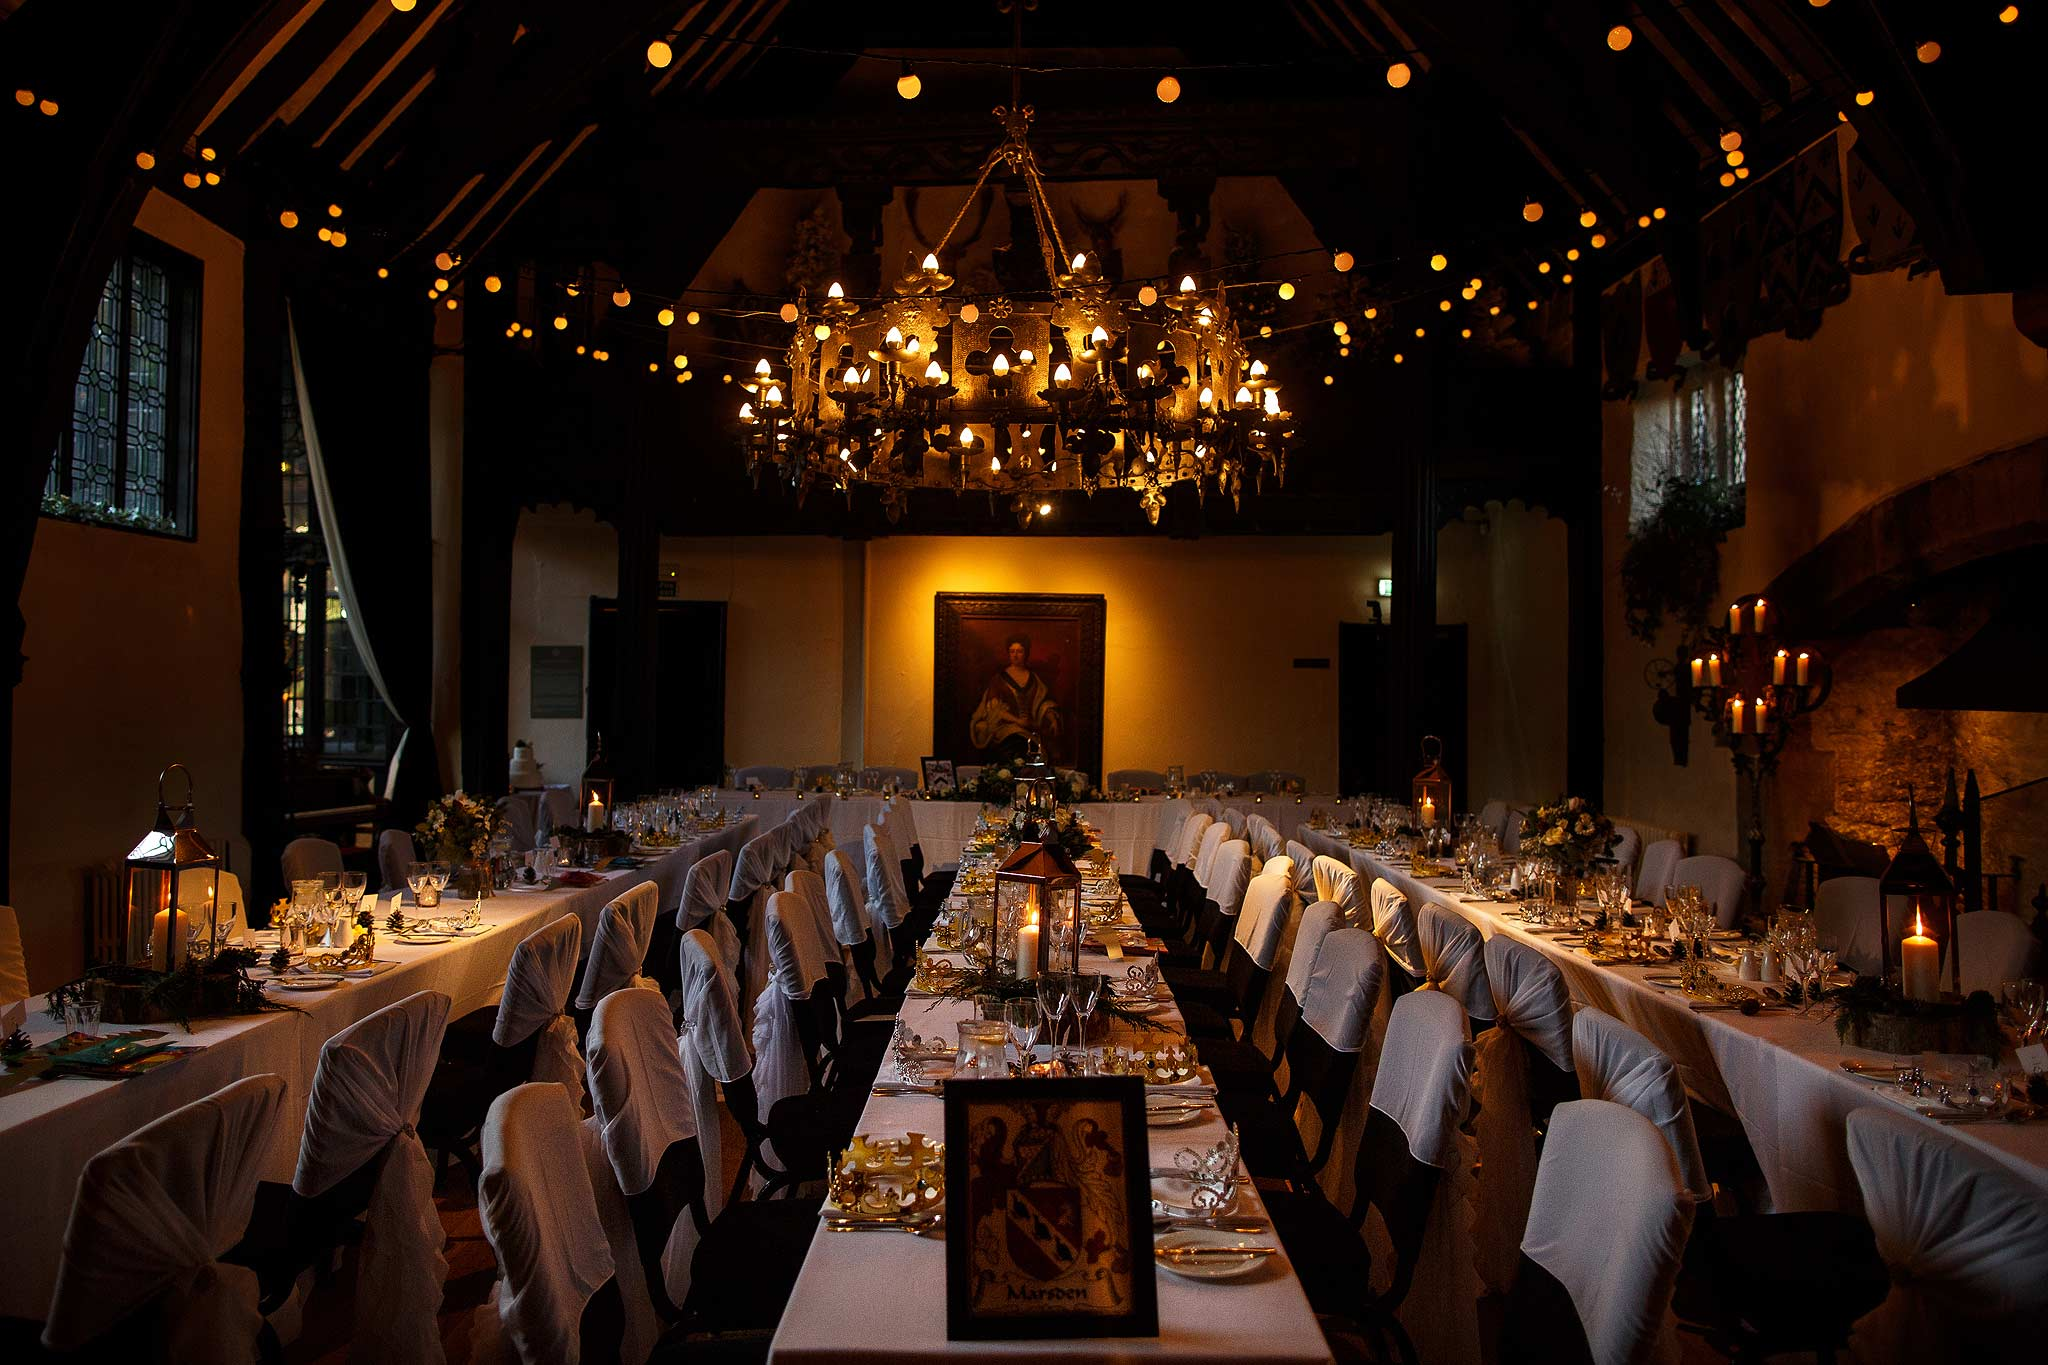 Photograph of the interoir banquet seating layout at Samlesbury Hall